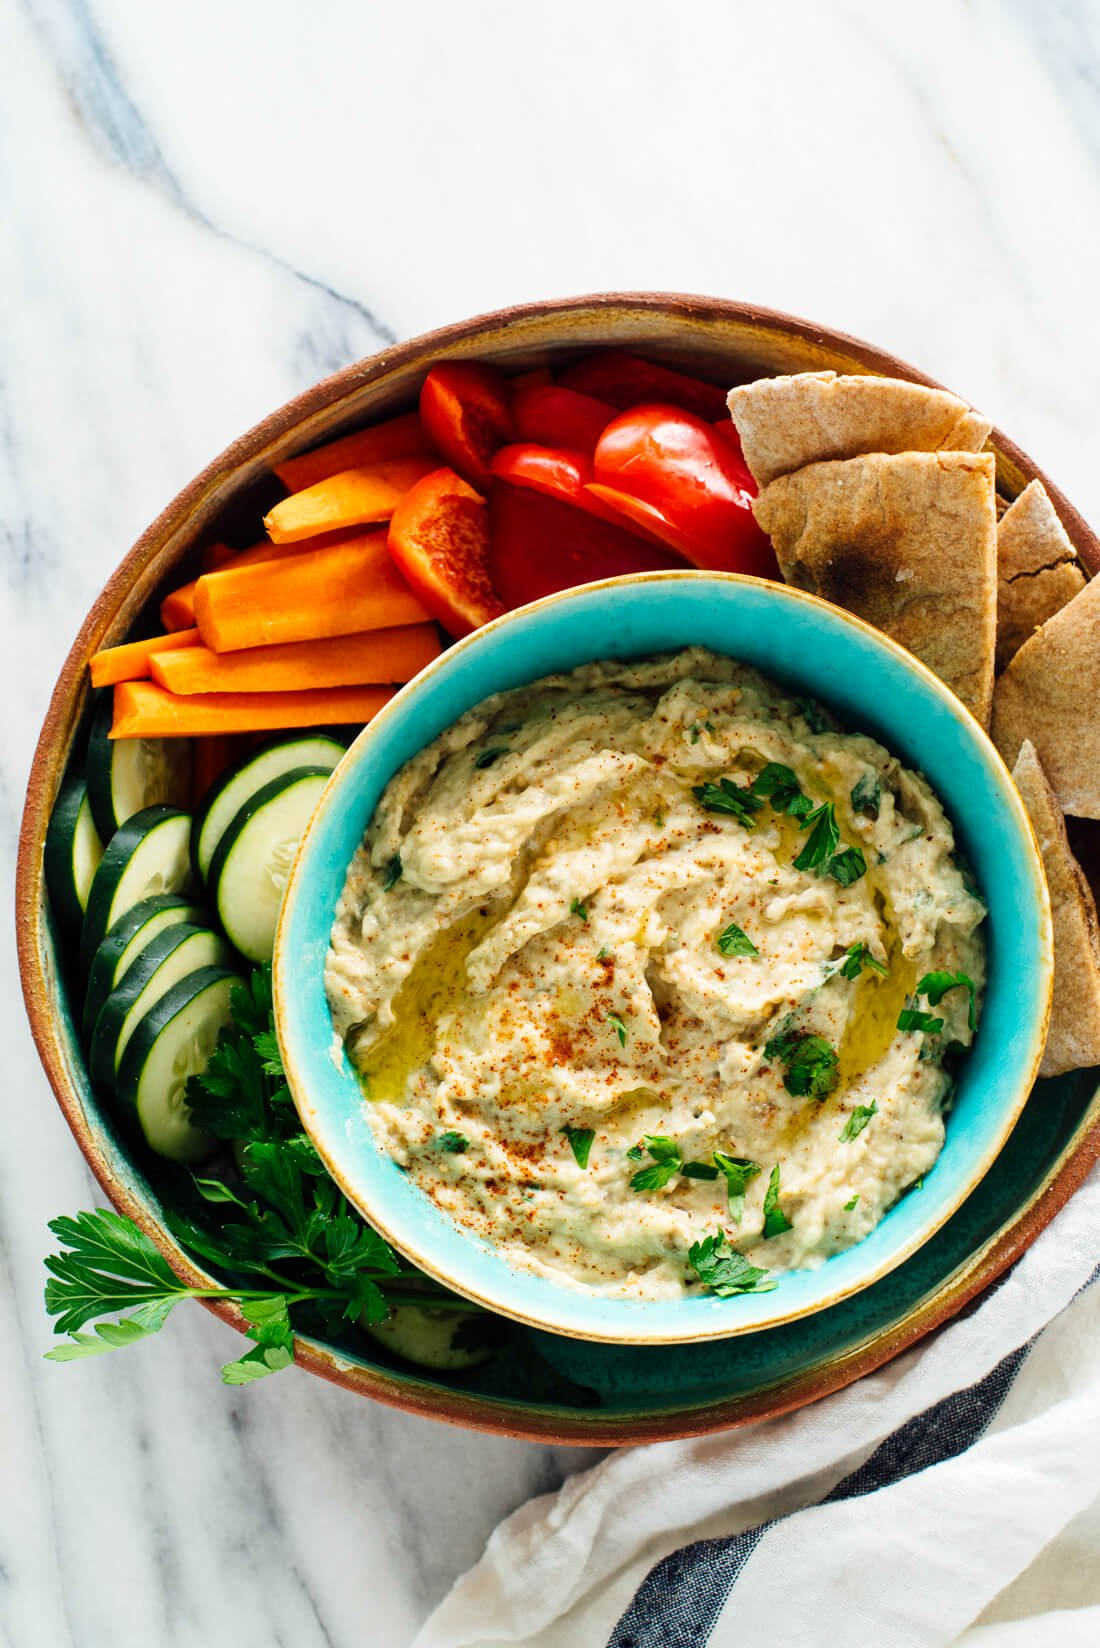 This easy baba ganoush recipe tastes amazing!